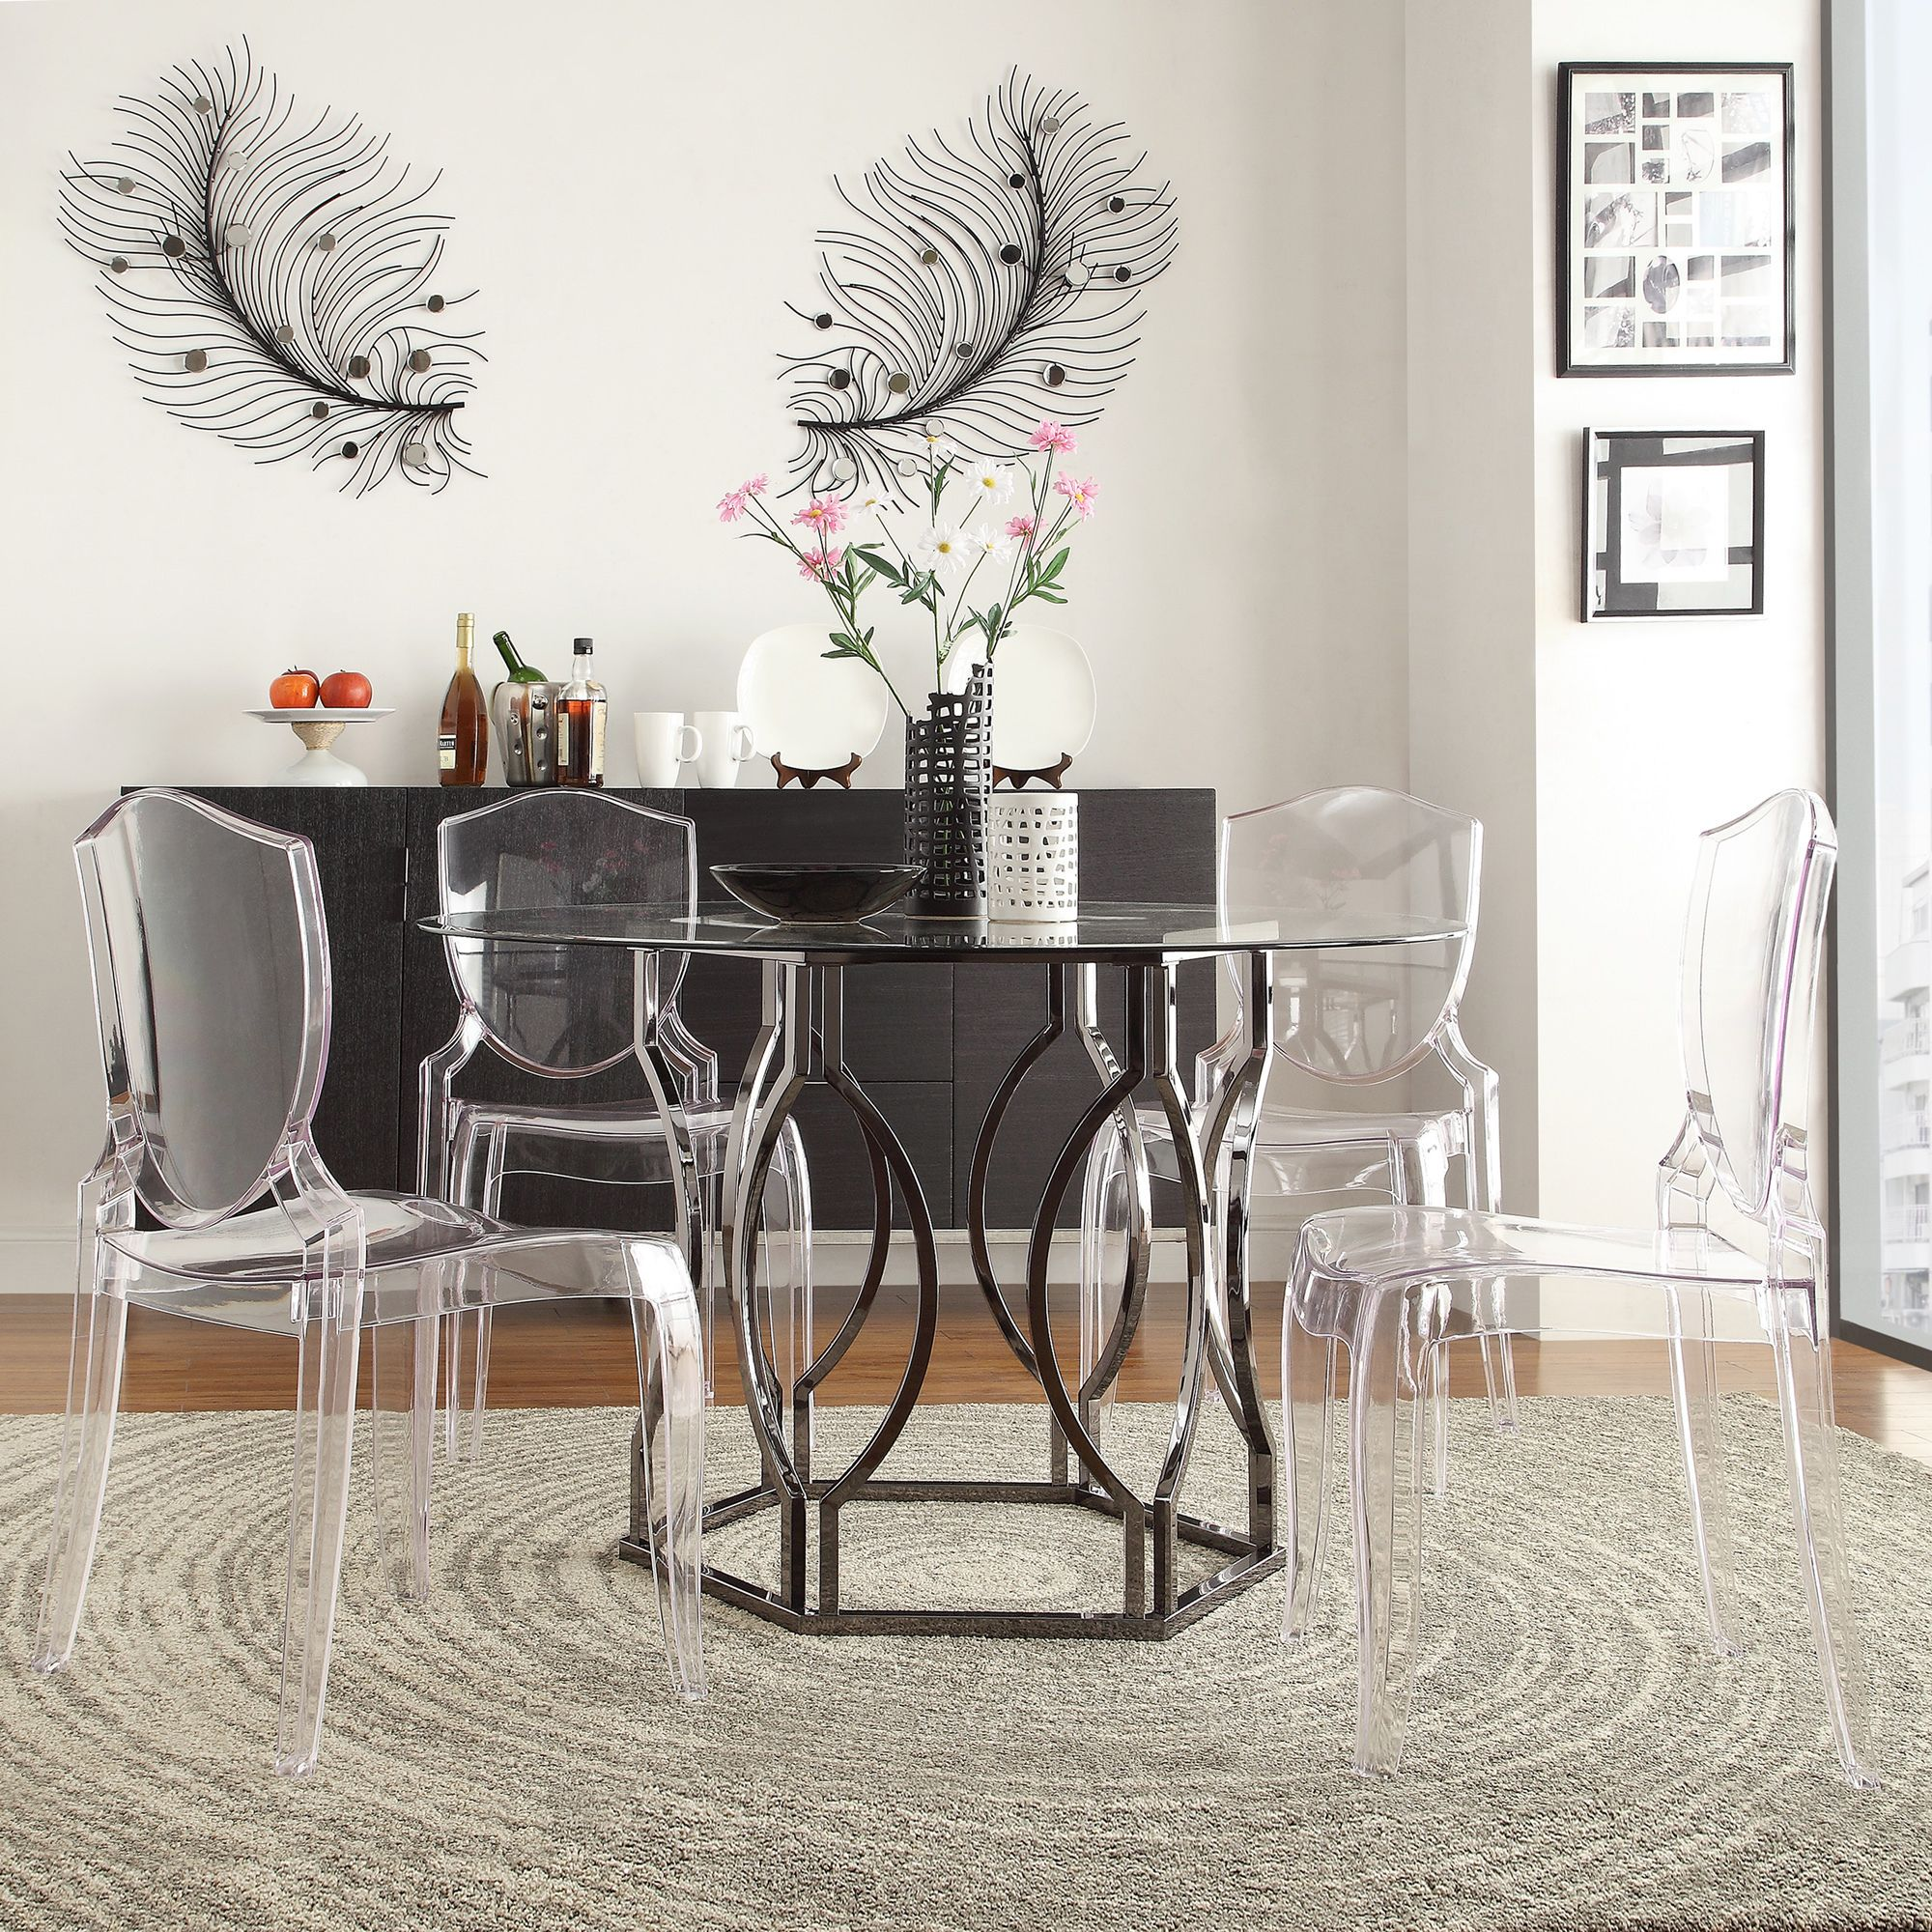 Concord Black Nickel Plated Round Glass Dining Table by iNSPIRE Q Bold by  iNSPIRE Q